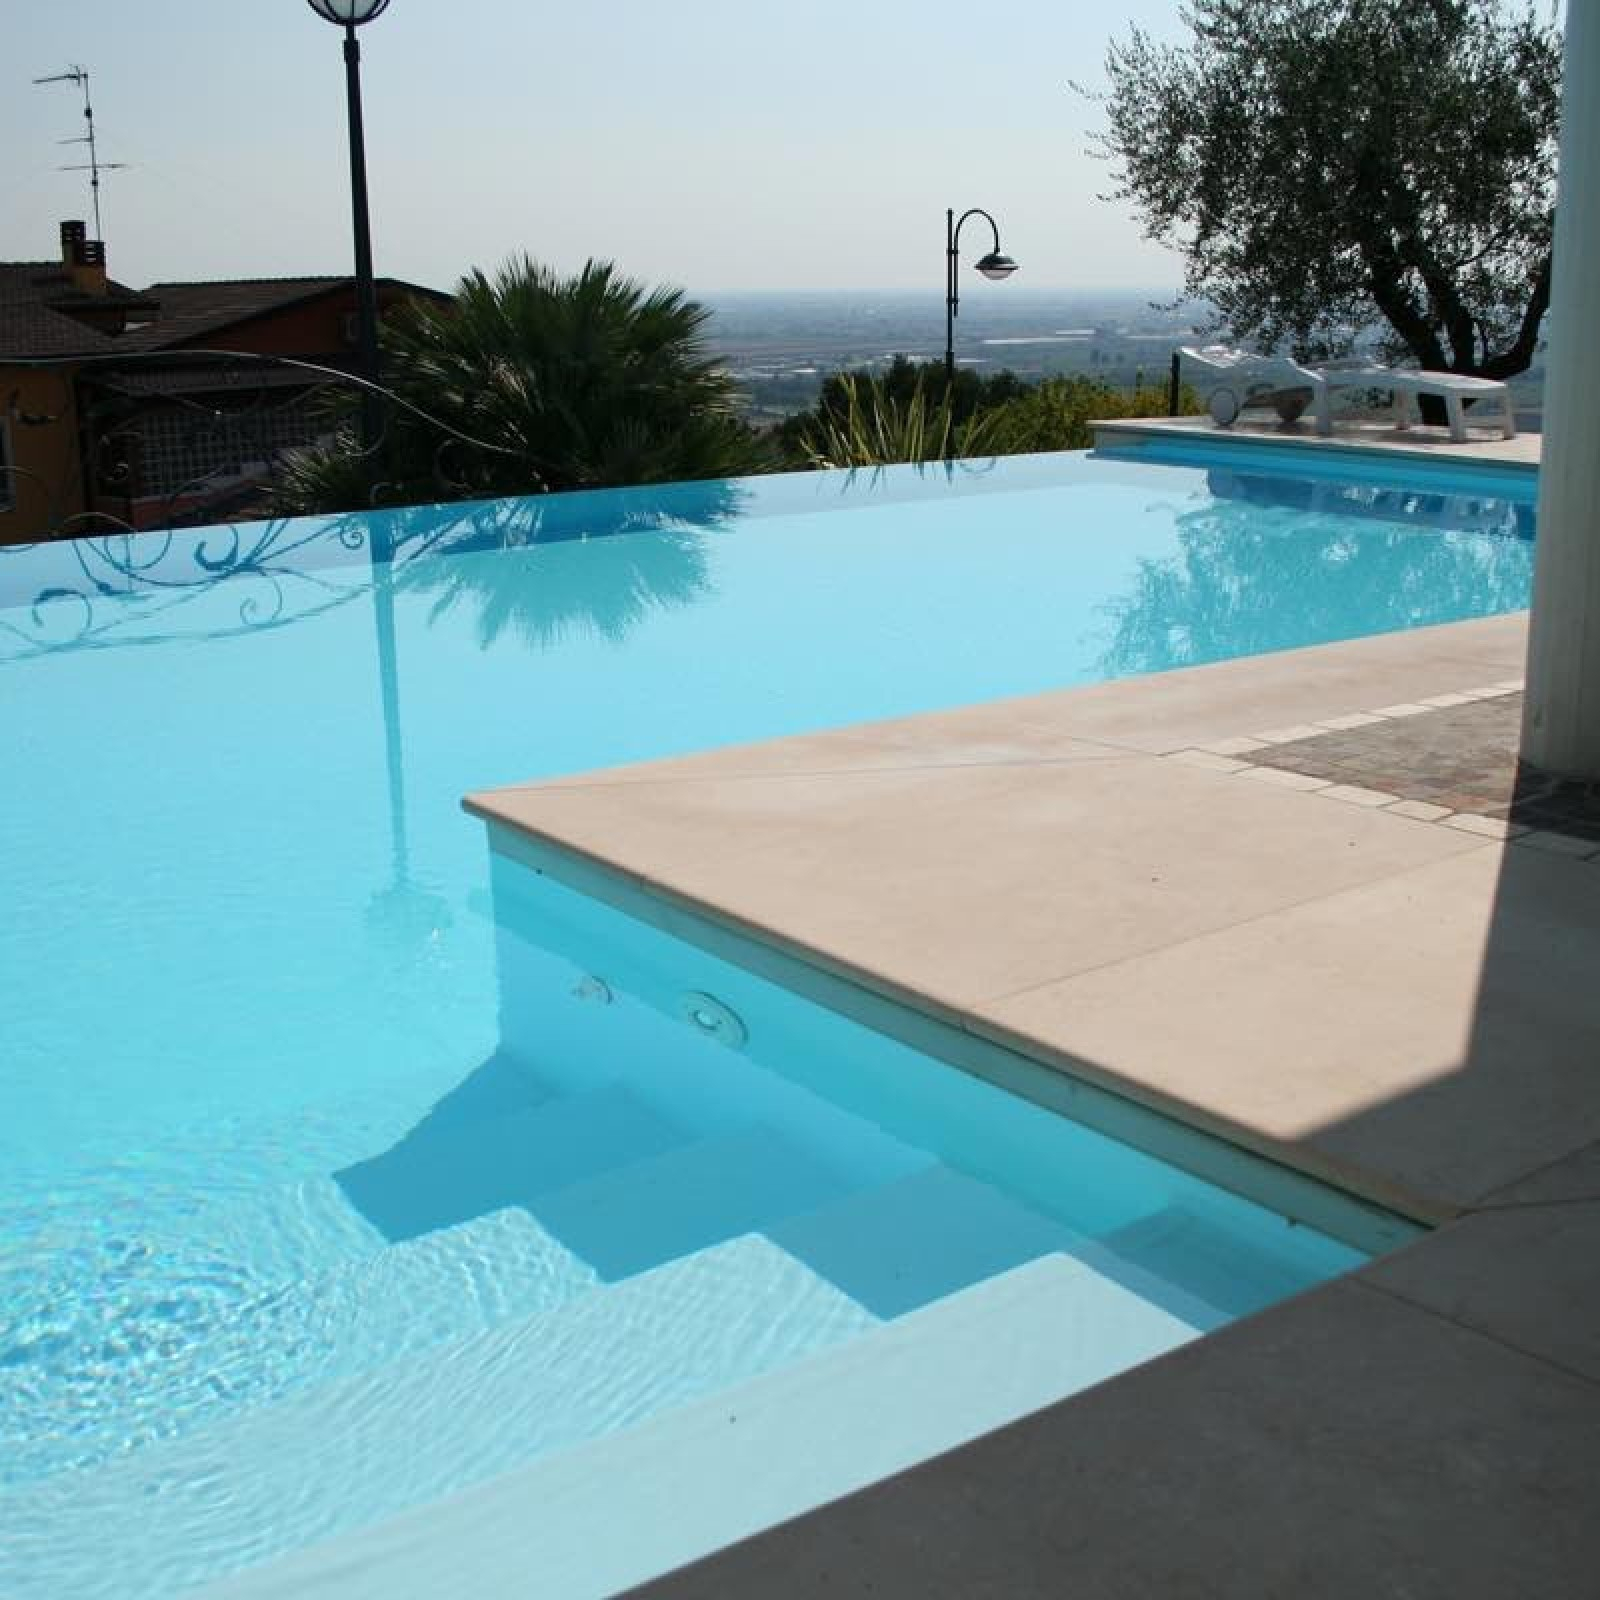 Steela Is The Future Of Modular Steel Pools - Cemi dedans Piscine Freedom